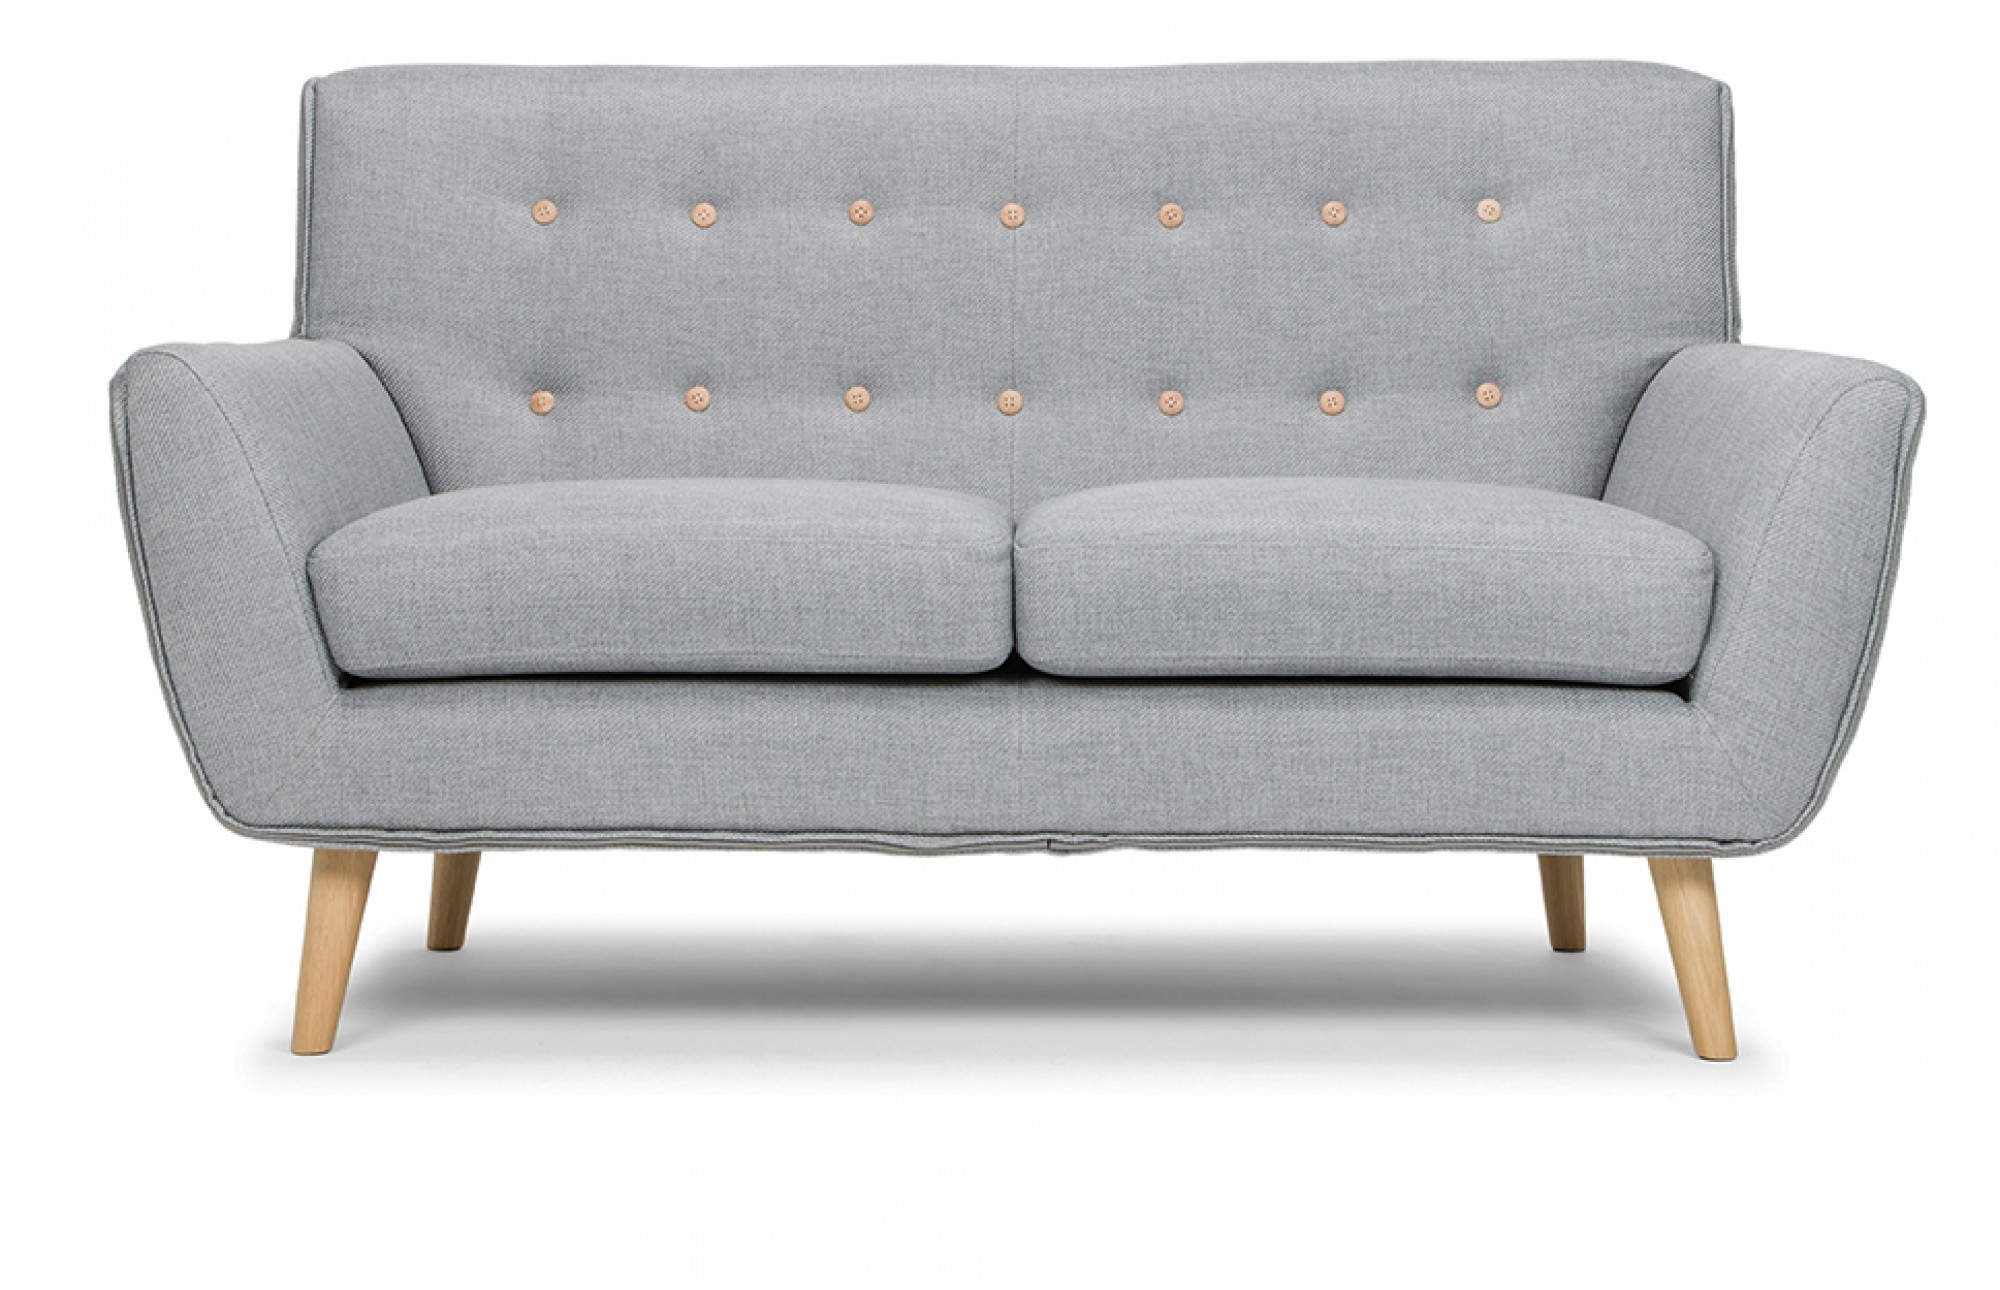 Richard 2 Seater Sofa In Stone Grey Out And Out Original Throughout Two Seater Chairs (Image 12 of 15)